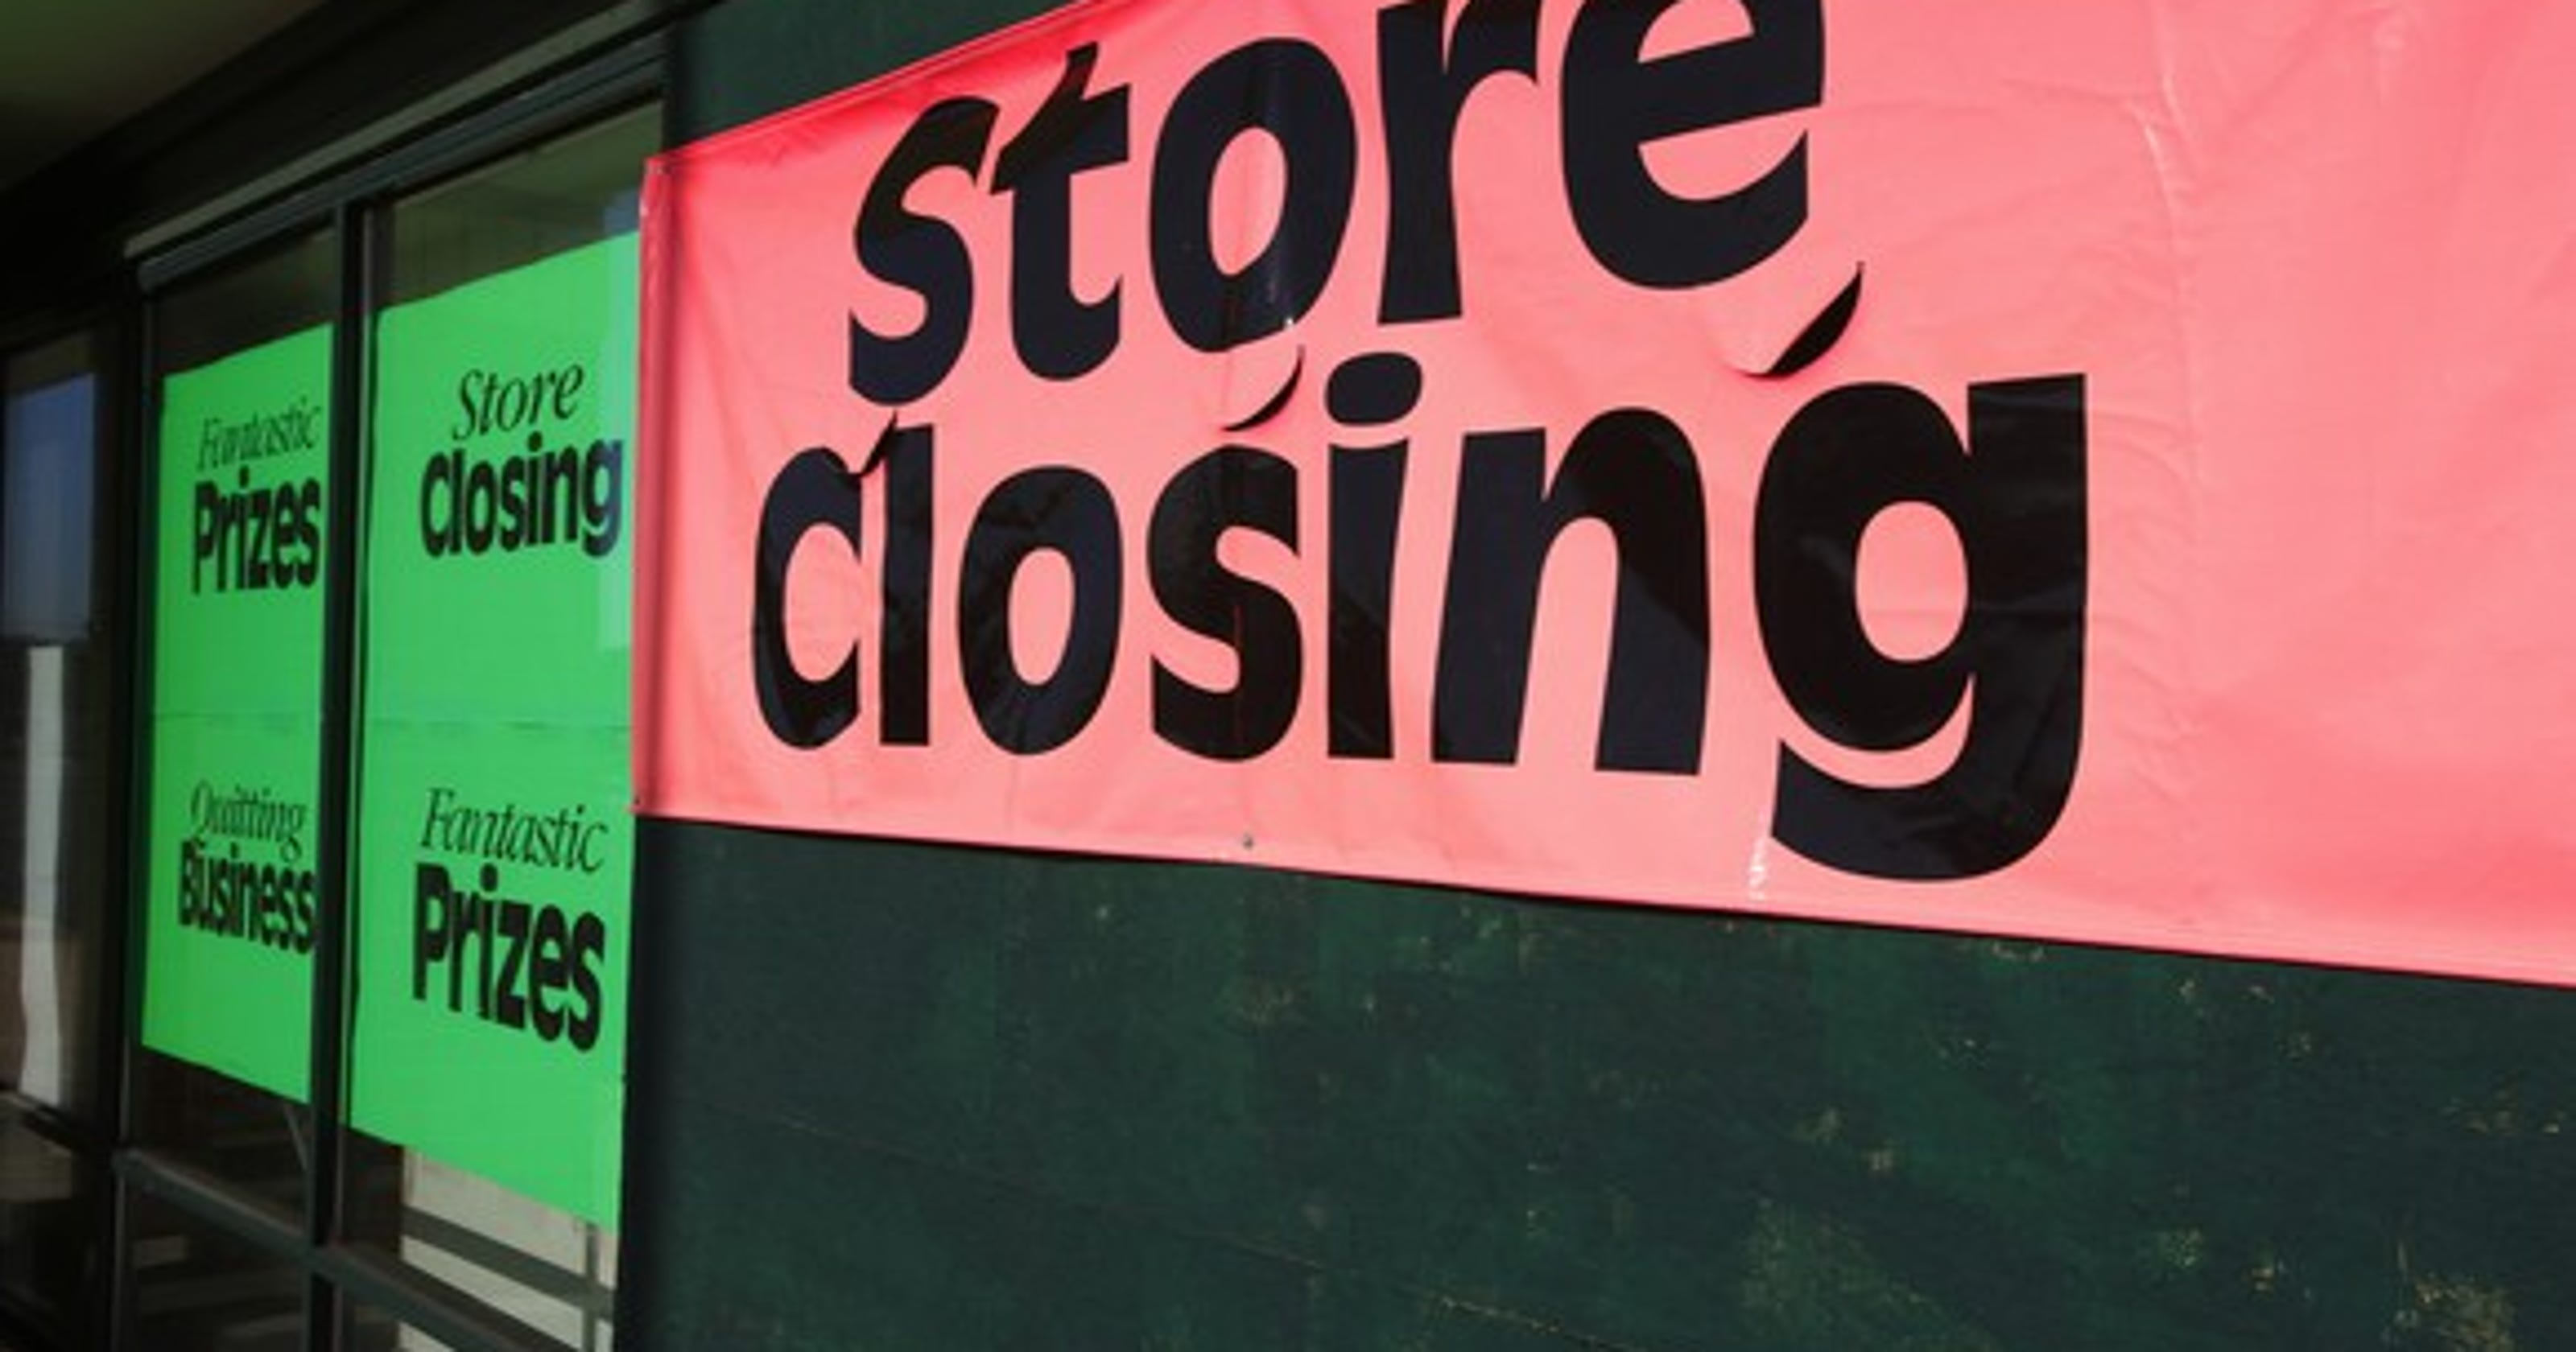 2019 store closings list: These retailers are shuttering